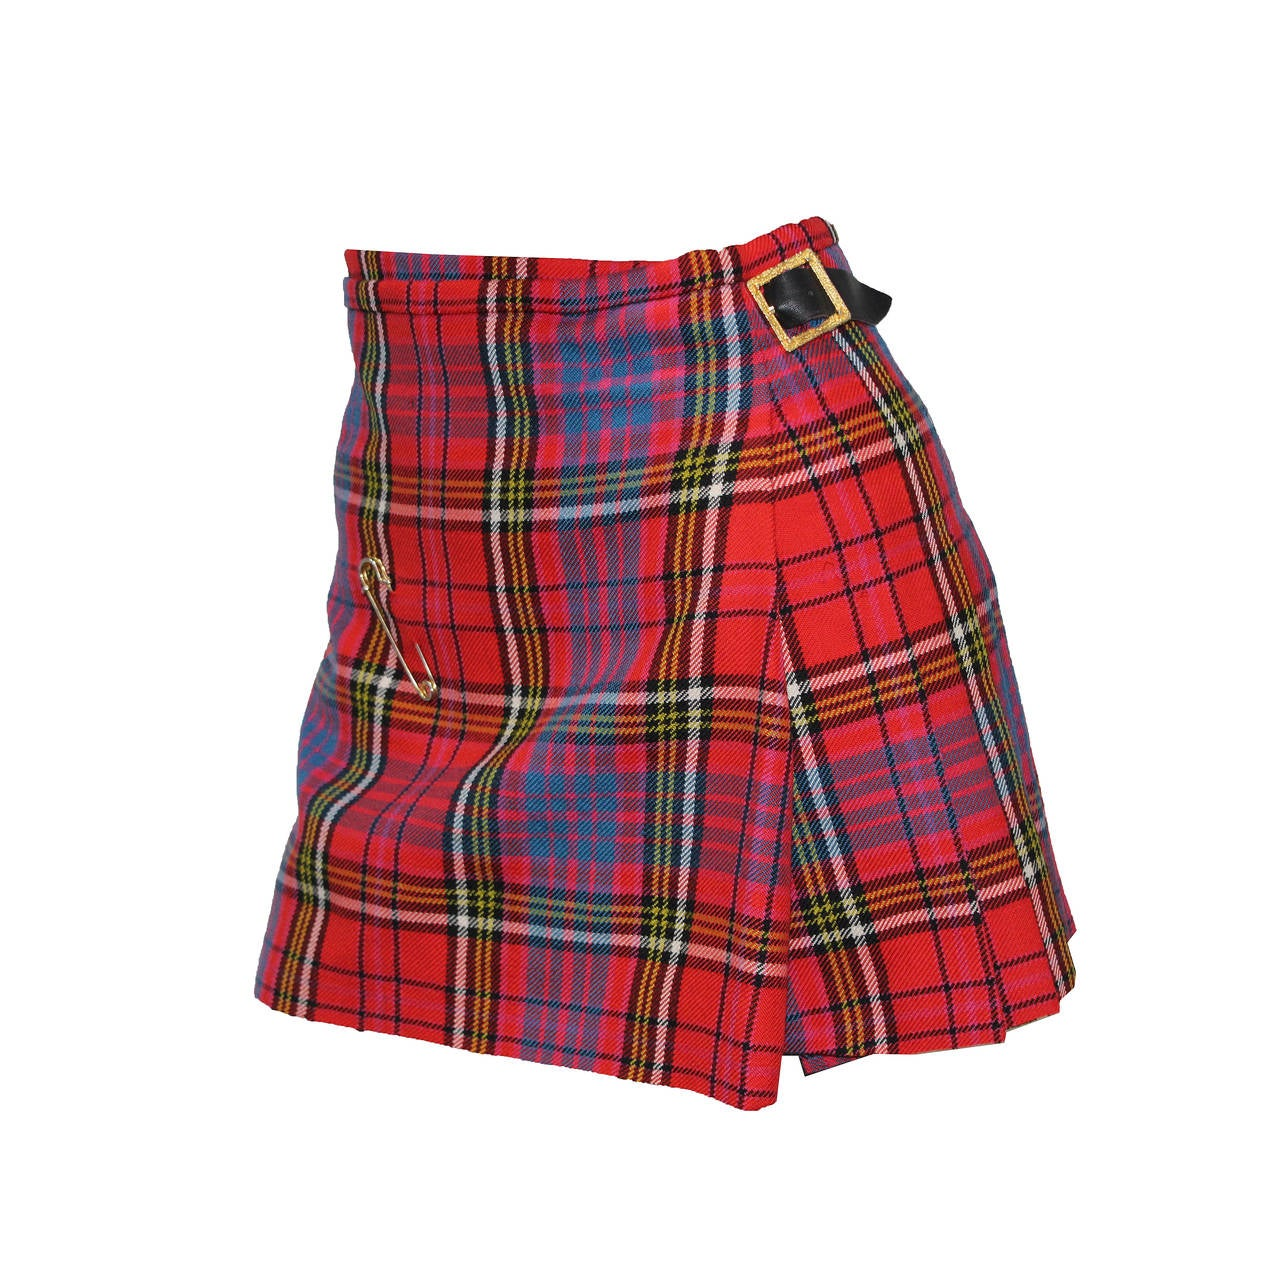 The iconic punk Vivienne Westwood pleated kilt skirt c. 1994 1